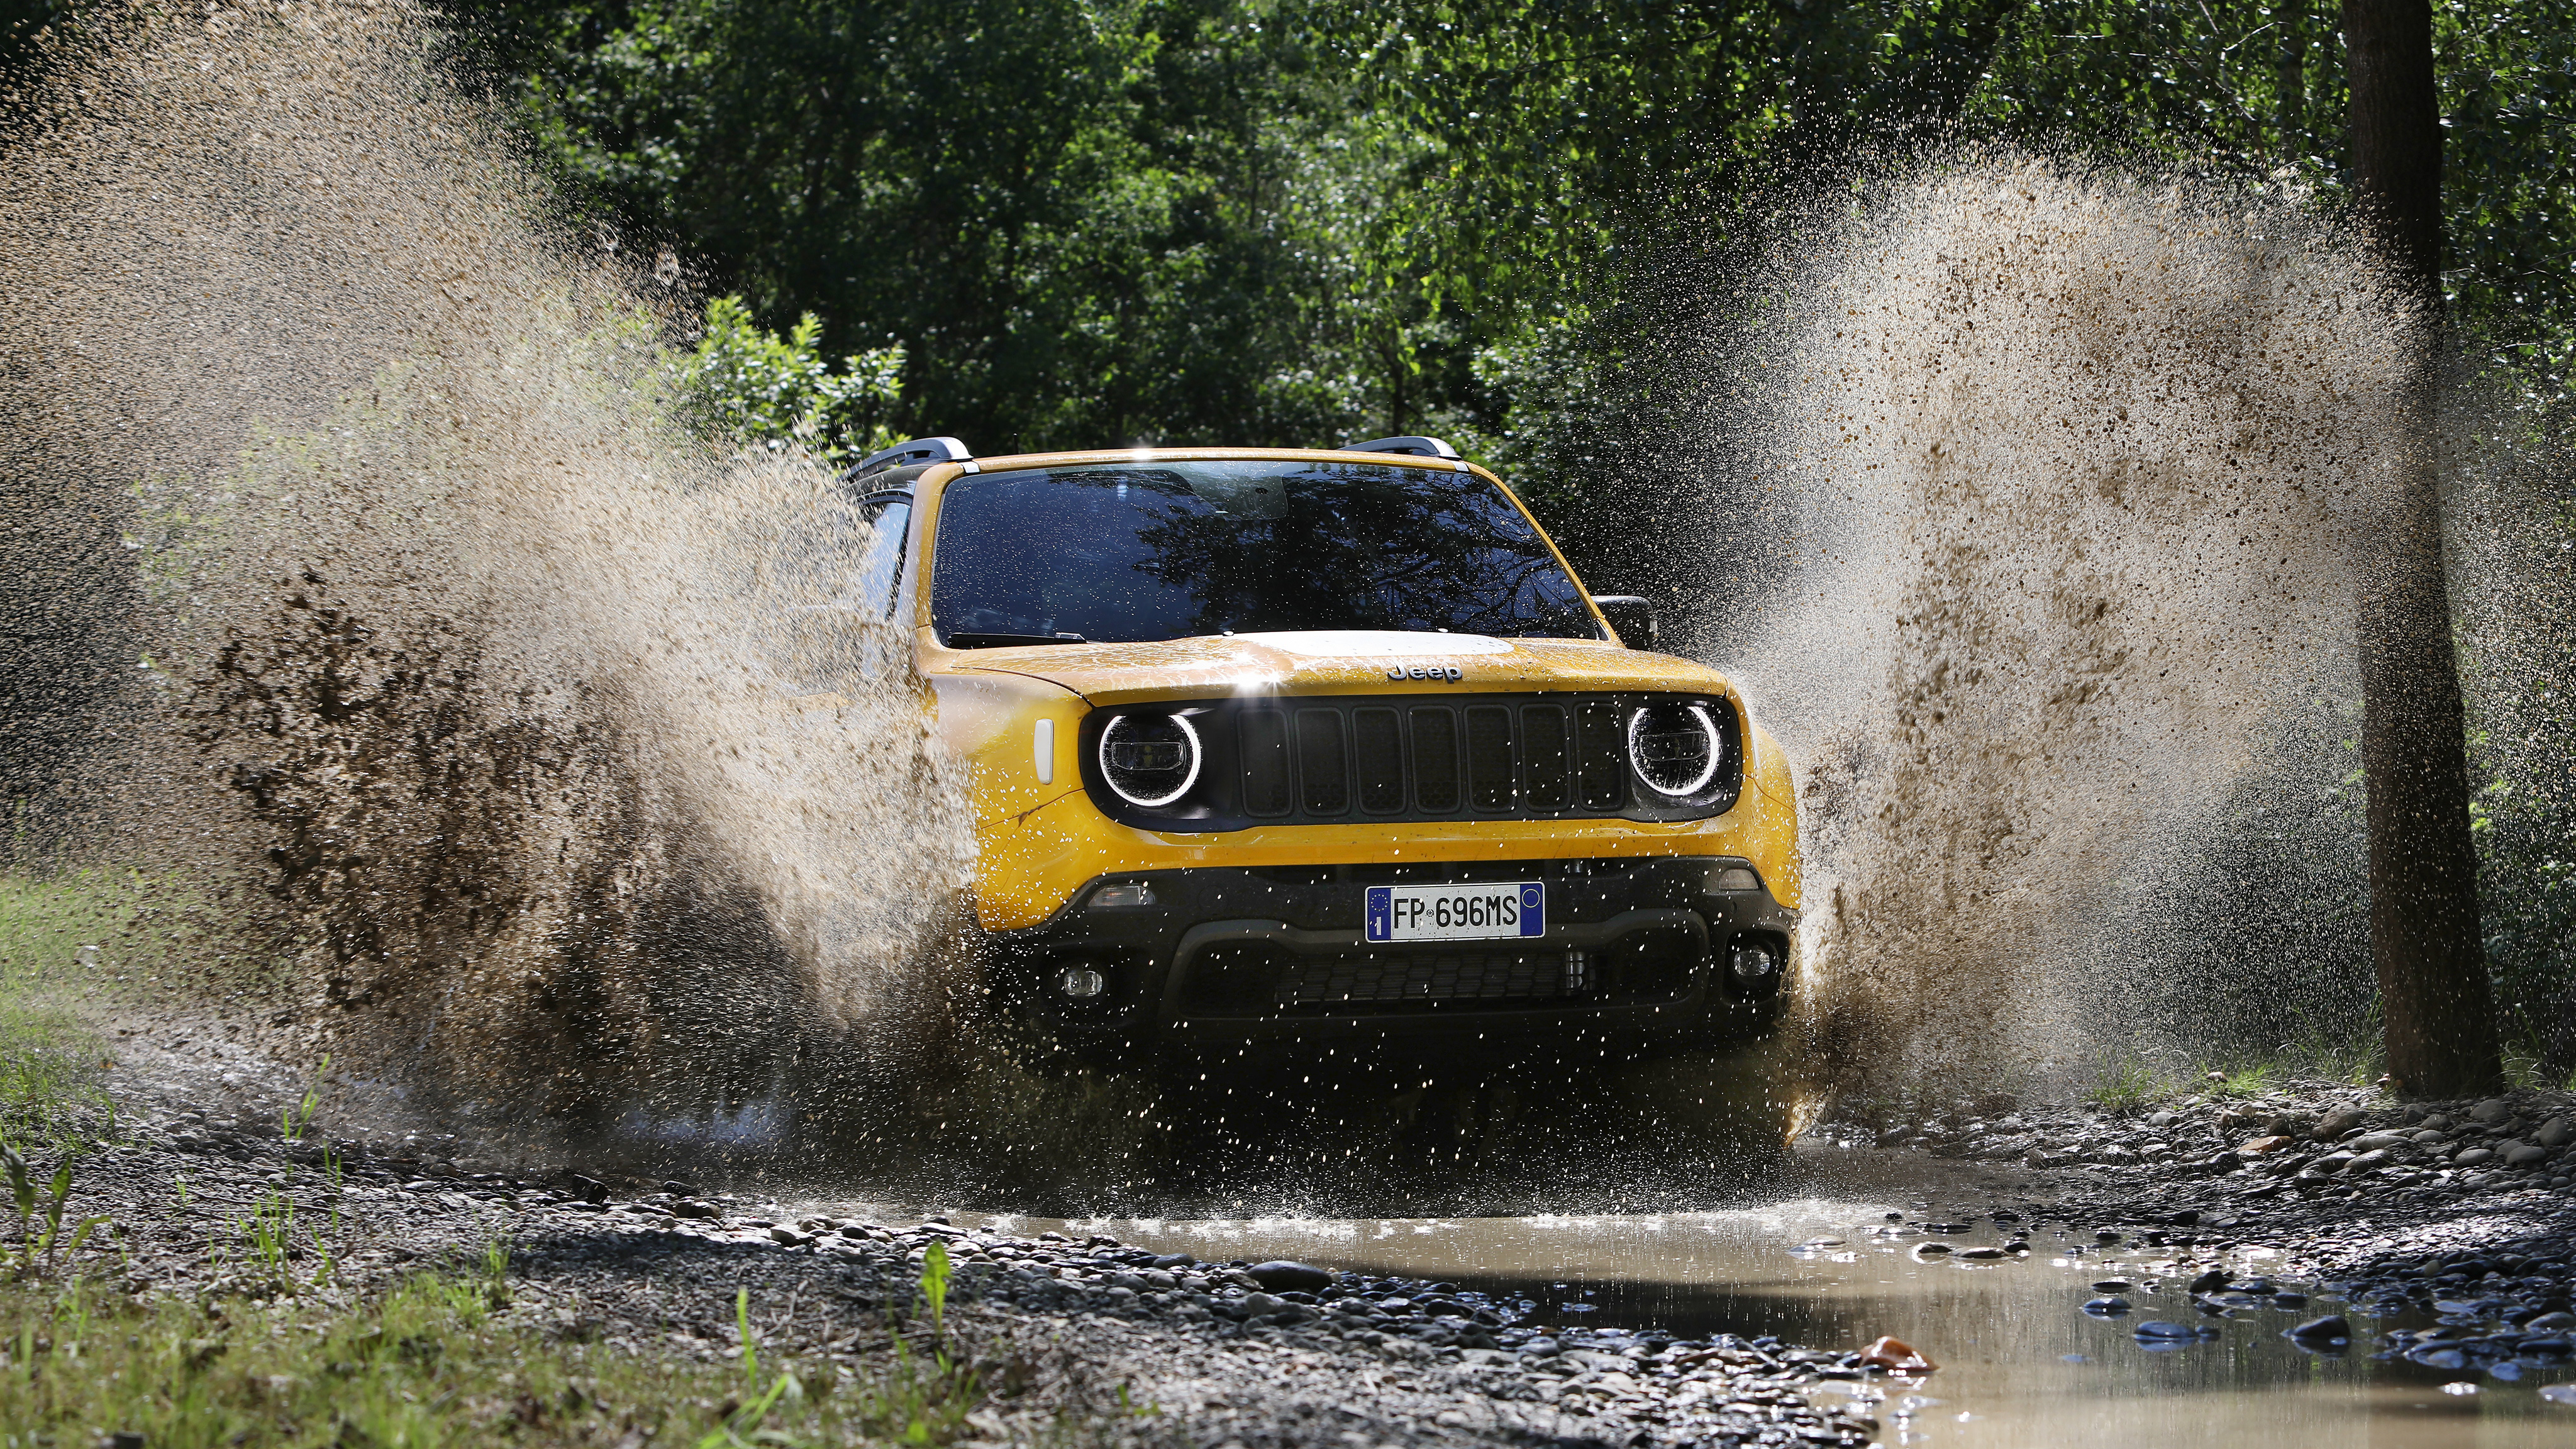 4k renegade jeep trailhawk wallpapers 1080 ultra 1920 2160 2560 1440 resolutions hdcarwallpapers